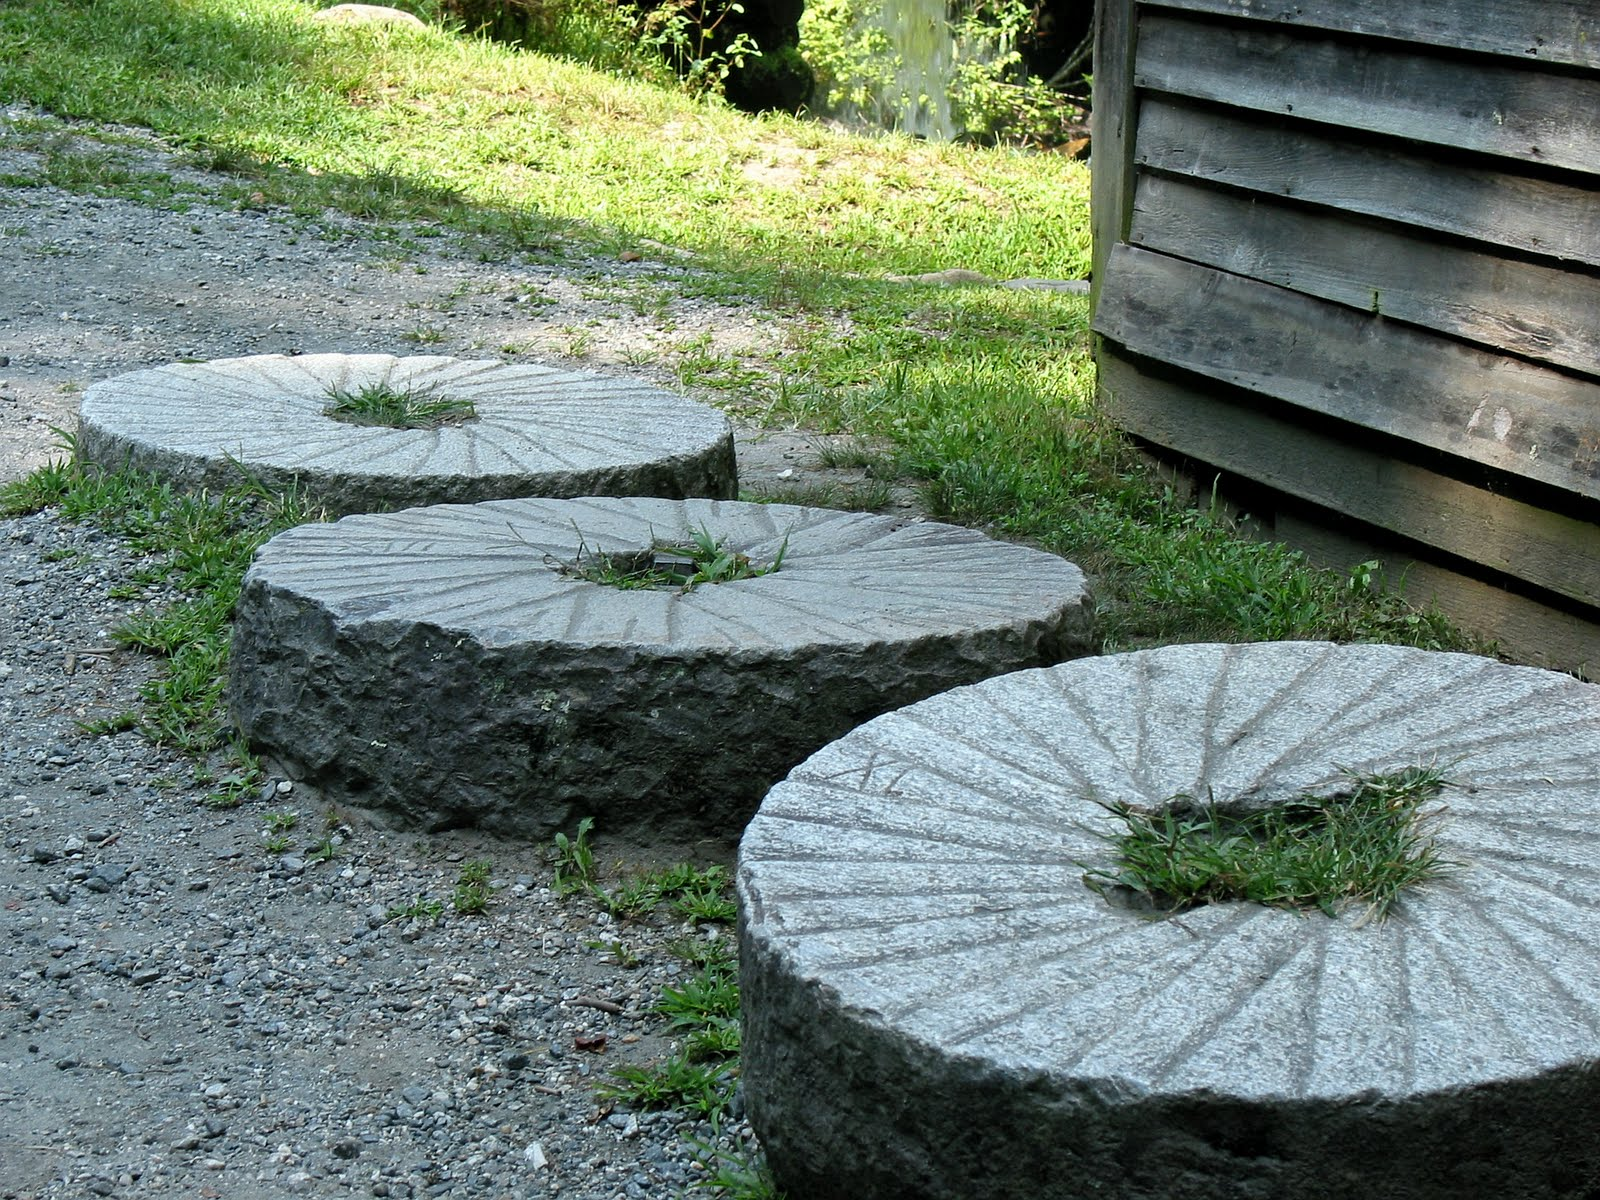 Grist Mill Grinding Stones http://big-green-turtle-adventures.blogspot.com/2010/08/blue-ridge-mtns-smoky-mtns.html